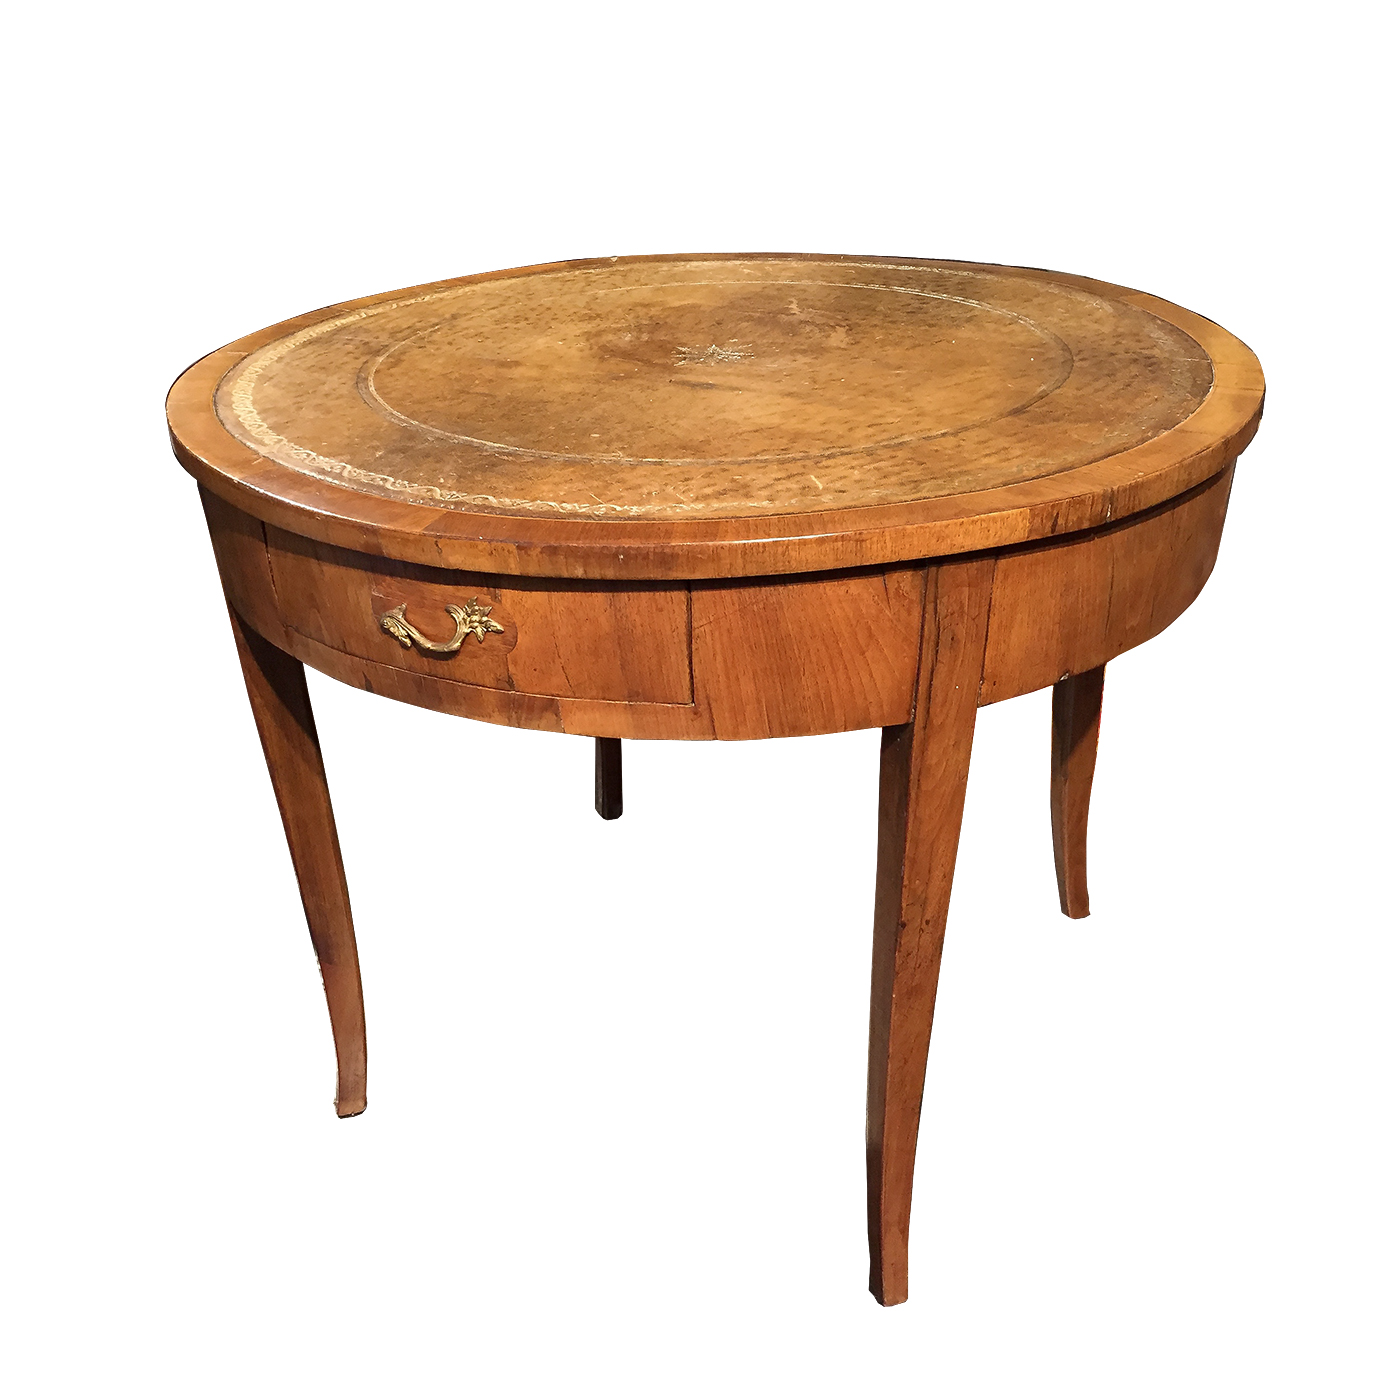 Italian Fruitwood Center Table with embossed leather top circa 1840